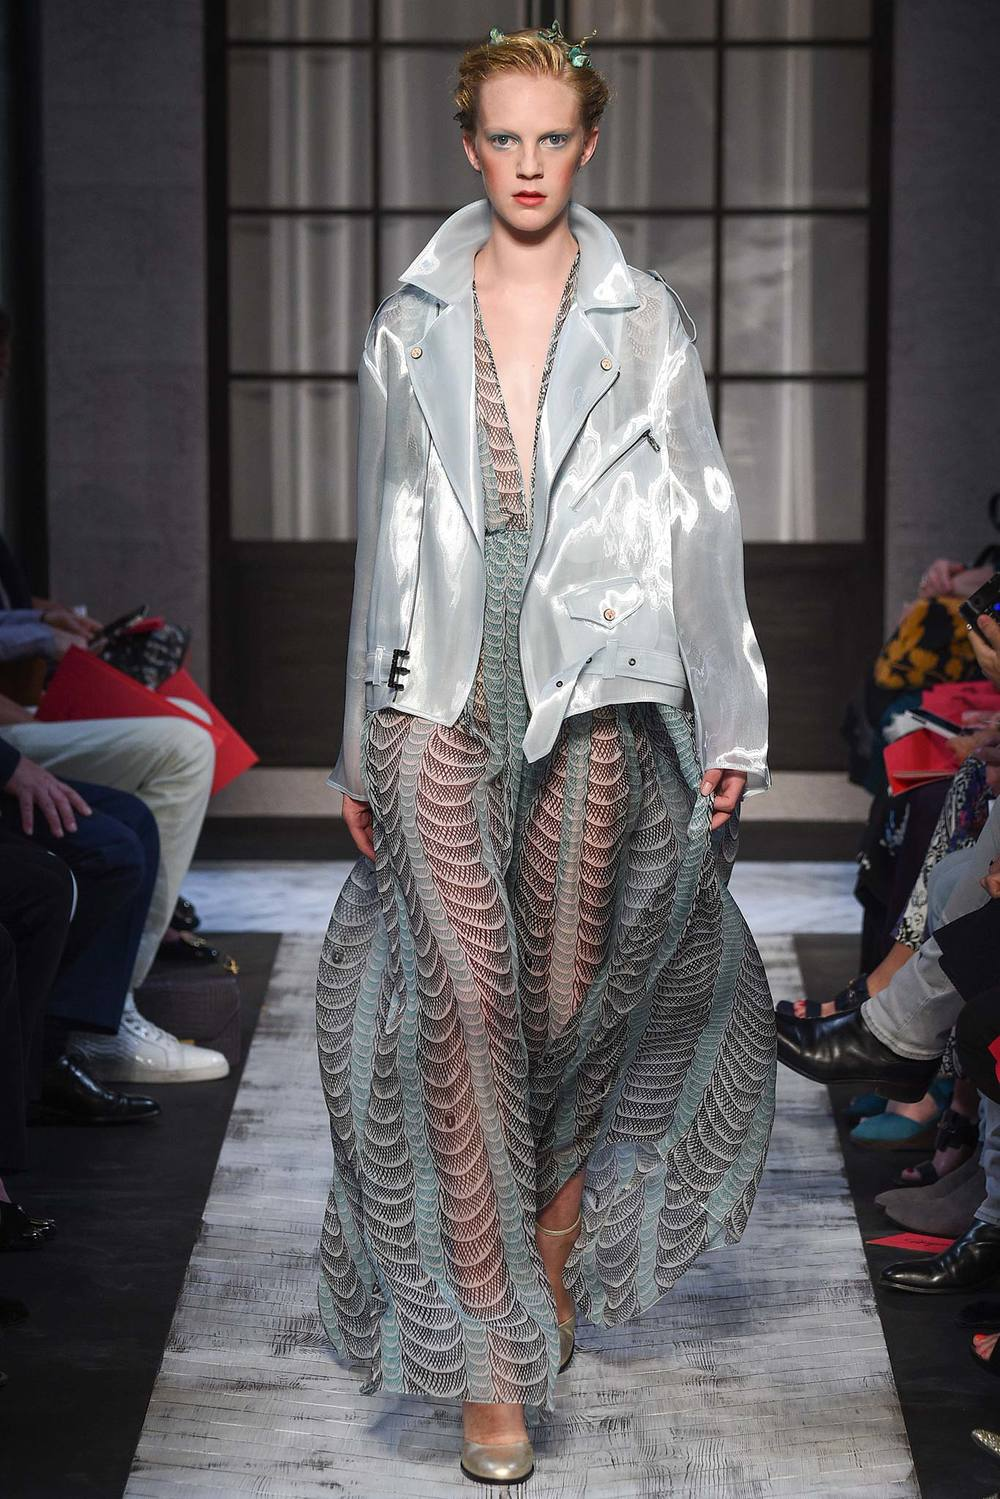 Designer: Achiaparelli, Photo Credit: Style.com